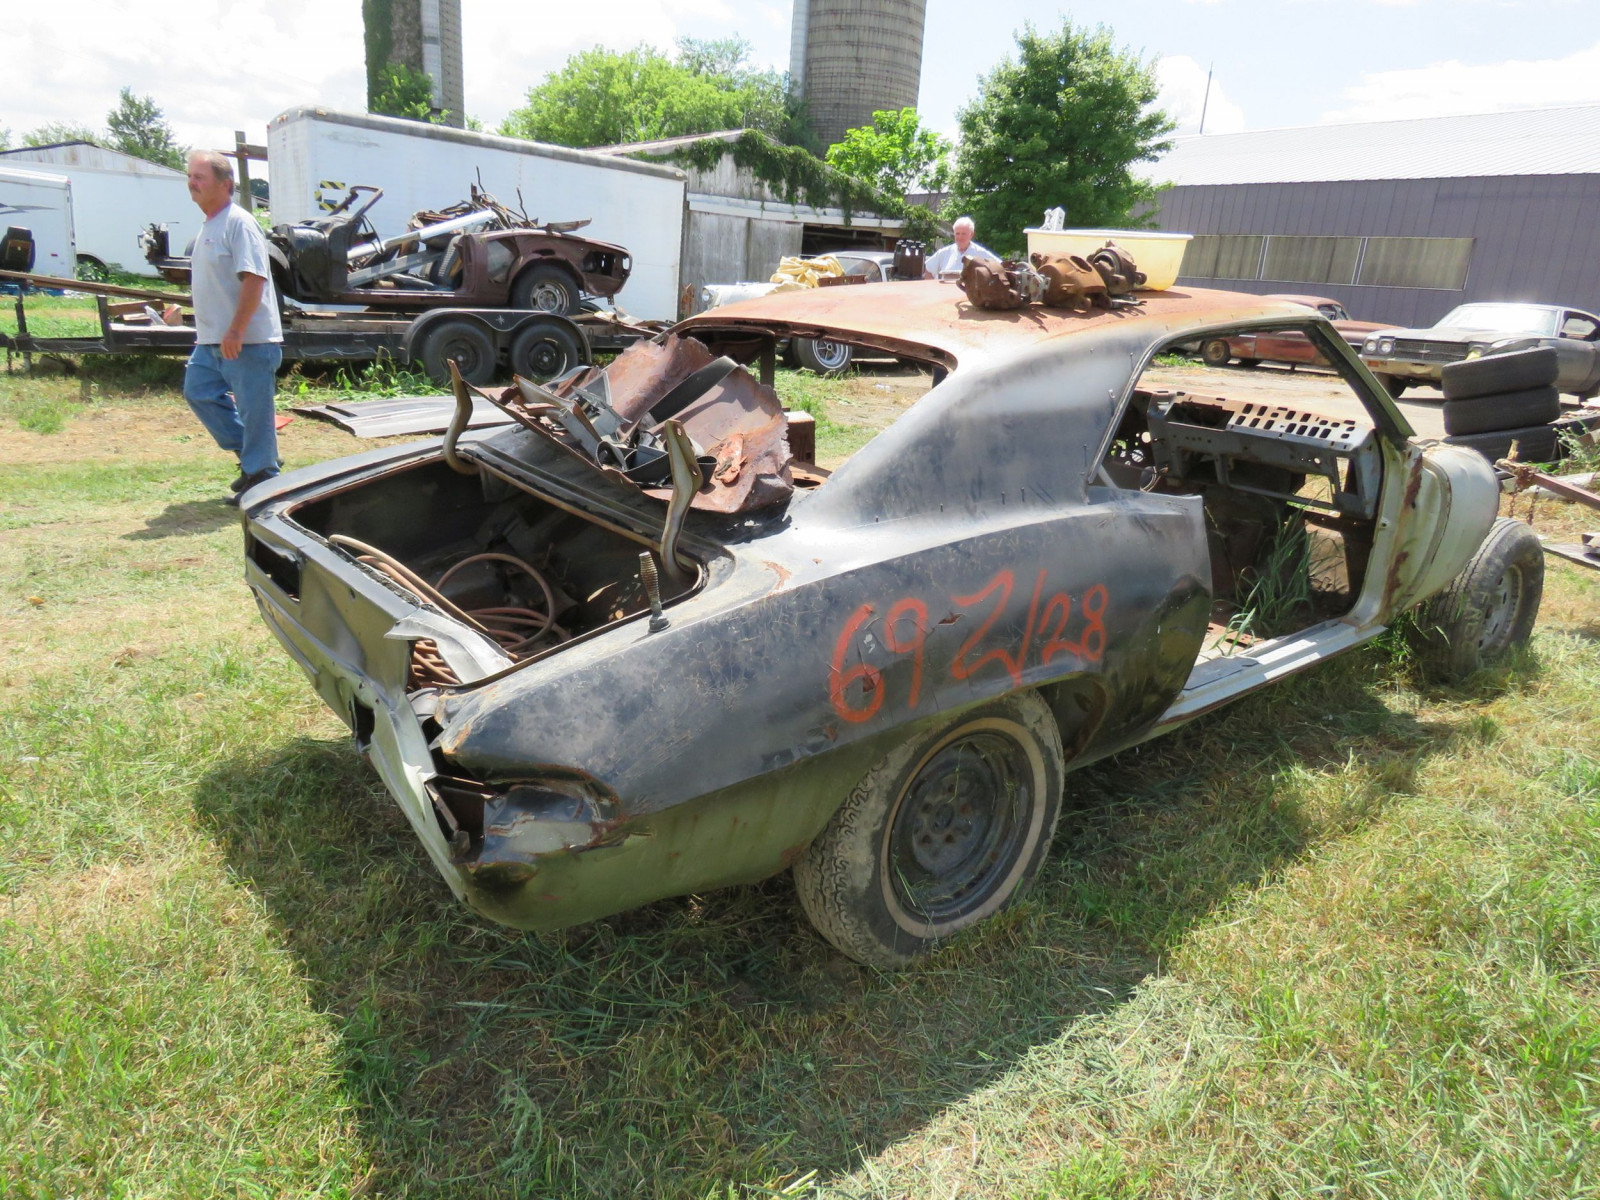 1969 Chevrolet Camaro Body for Restore - Image 4